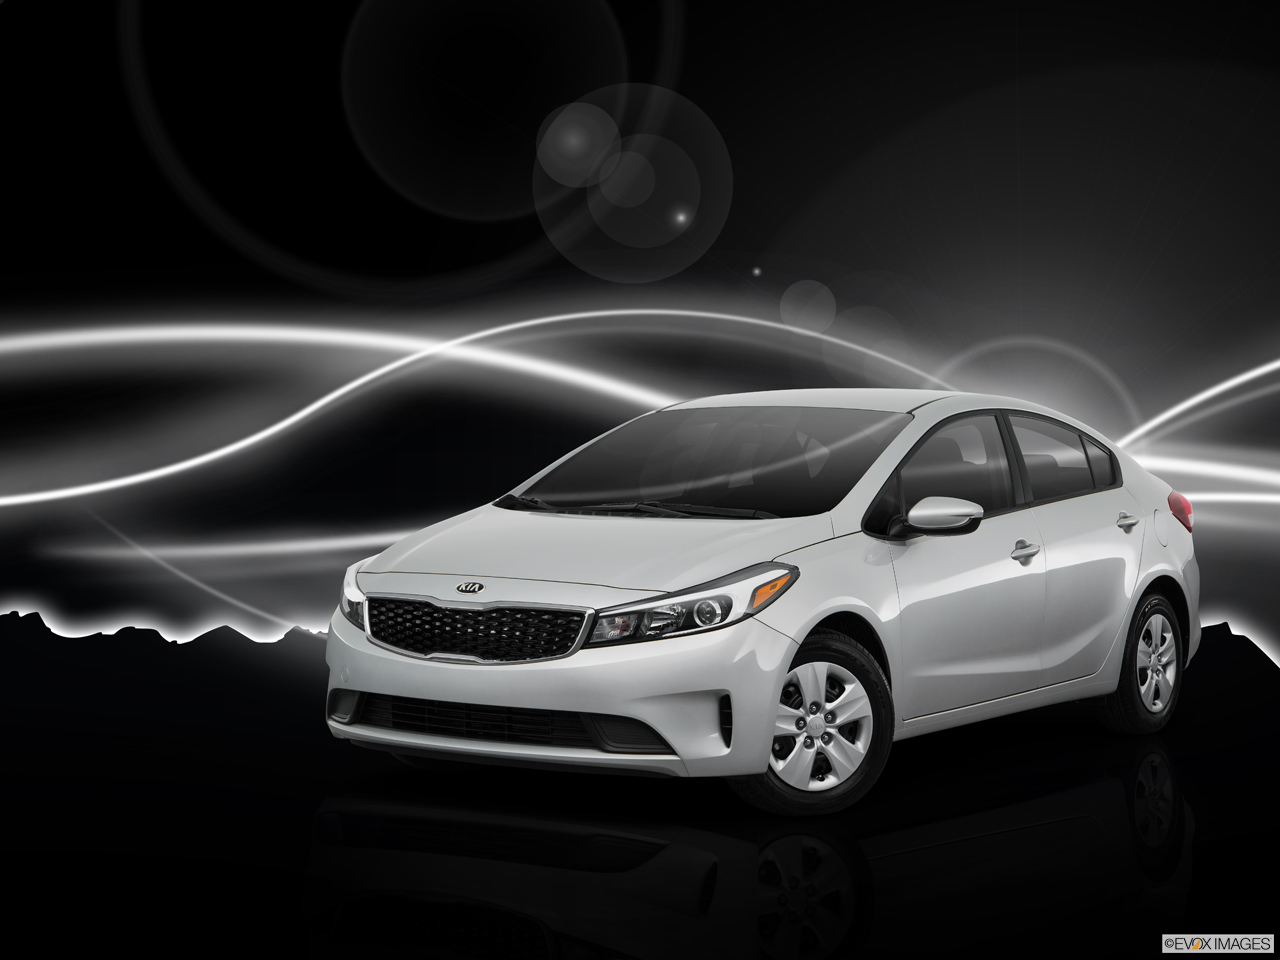 Exterior View Of 2017 KIA Forte at KIA Cerritos